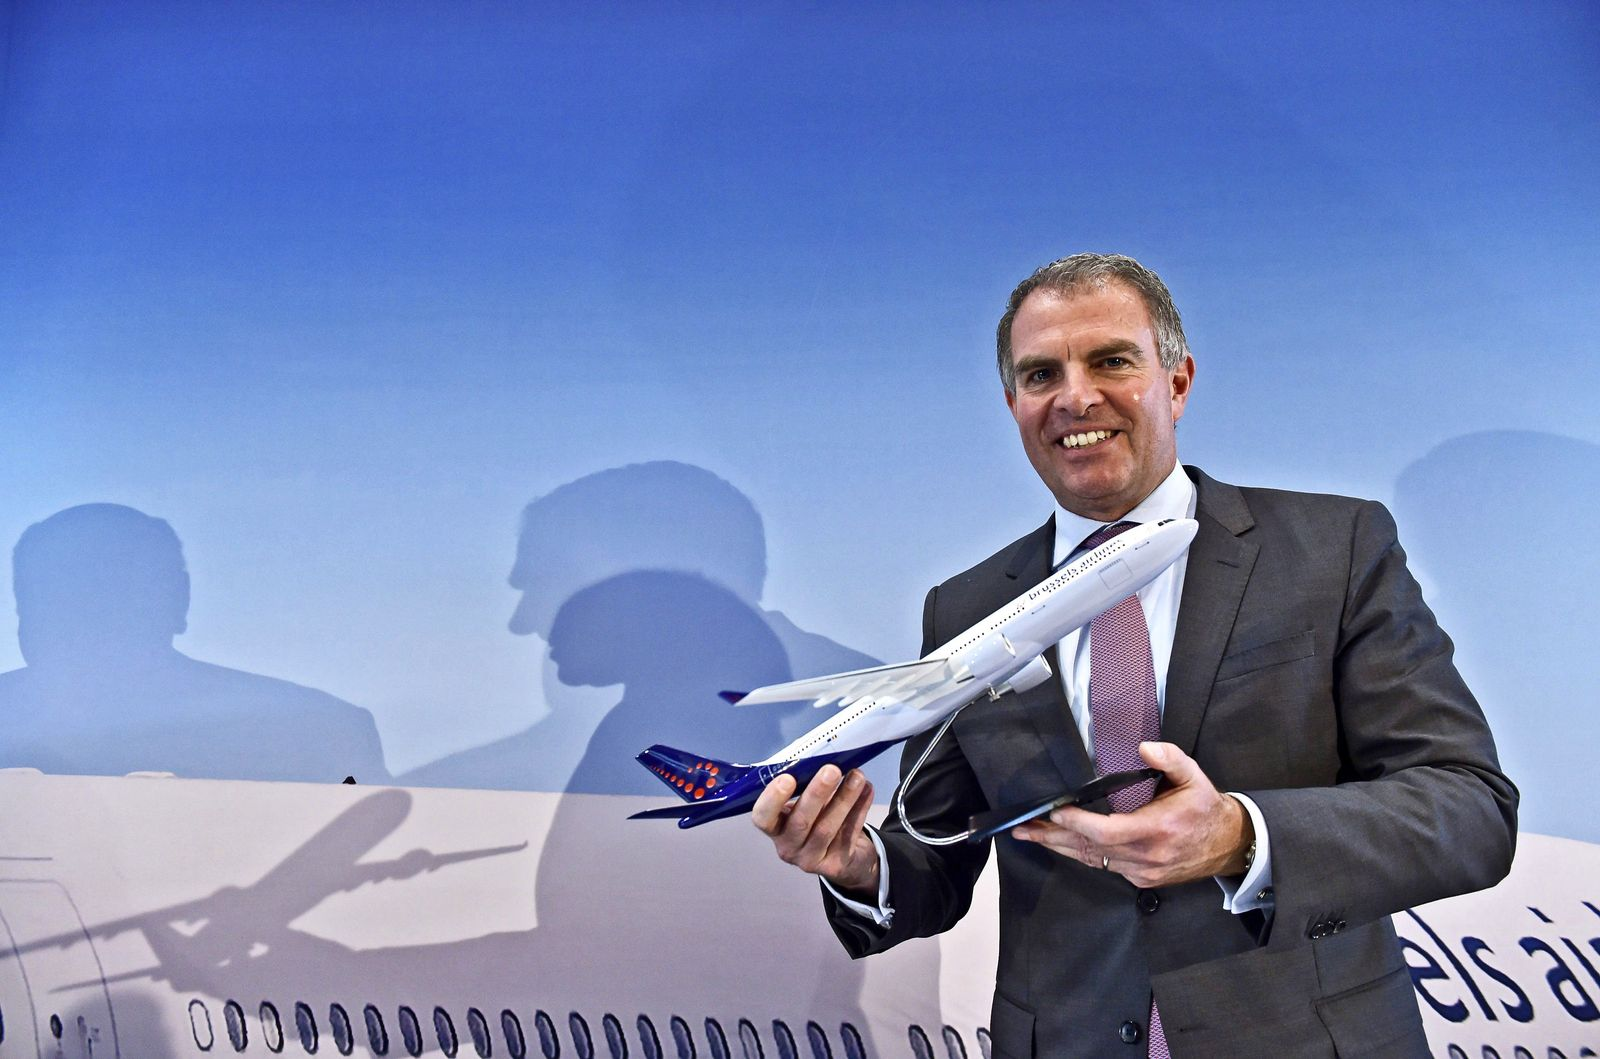 News conference of Brussels Airlines and Lufthansa